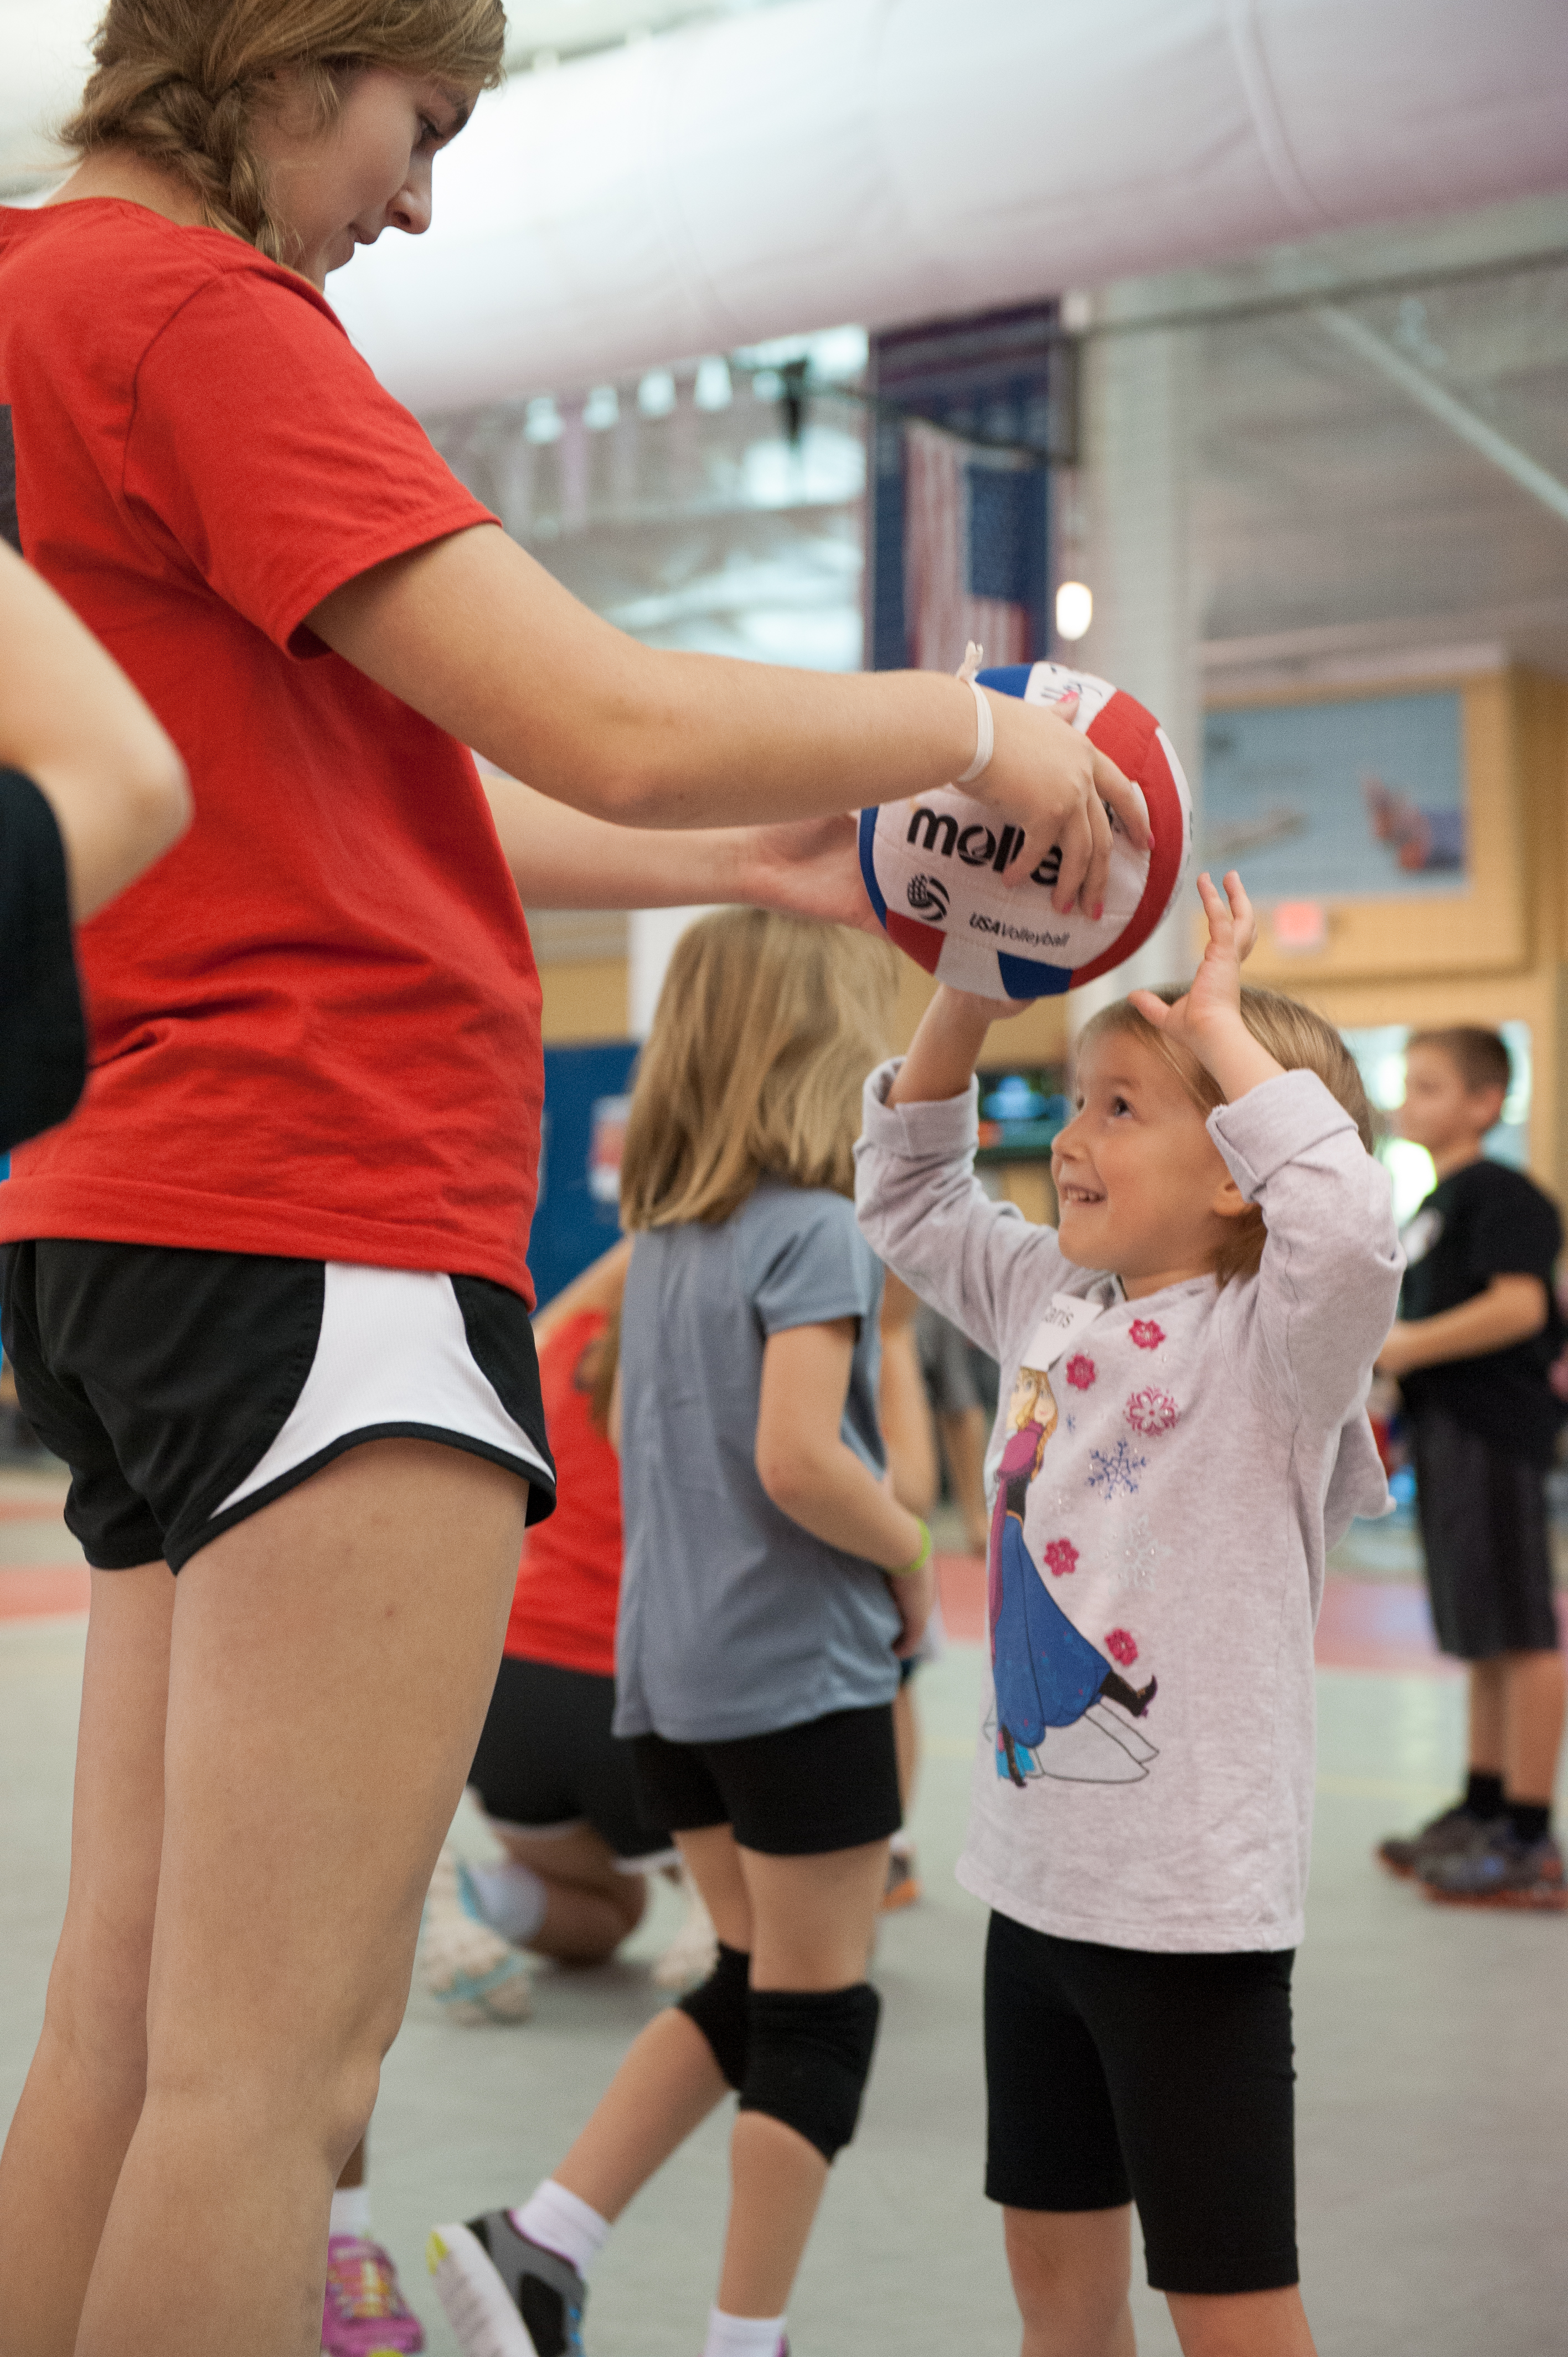 Jumpin Junior player learning to set from coach during kids volleyball practice